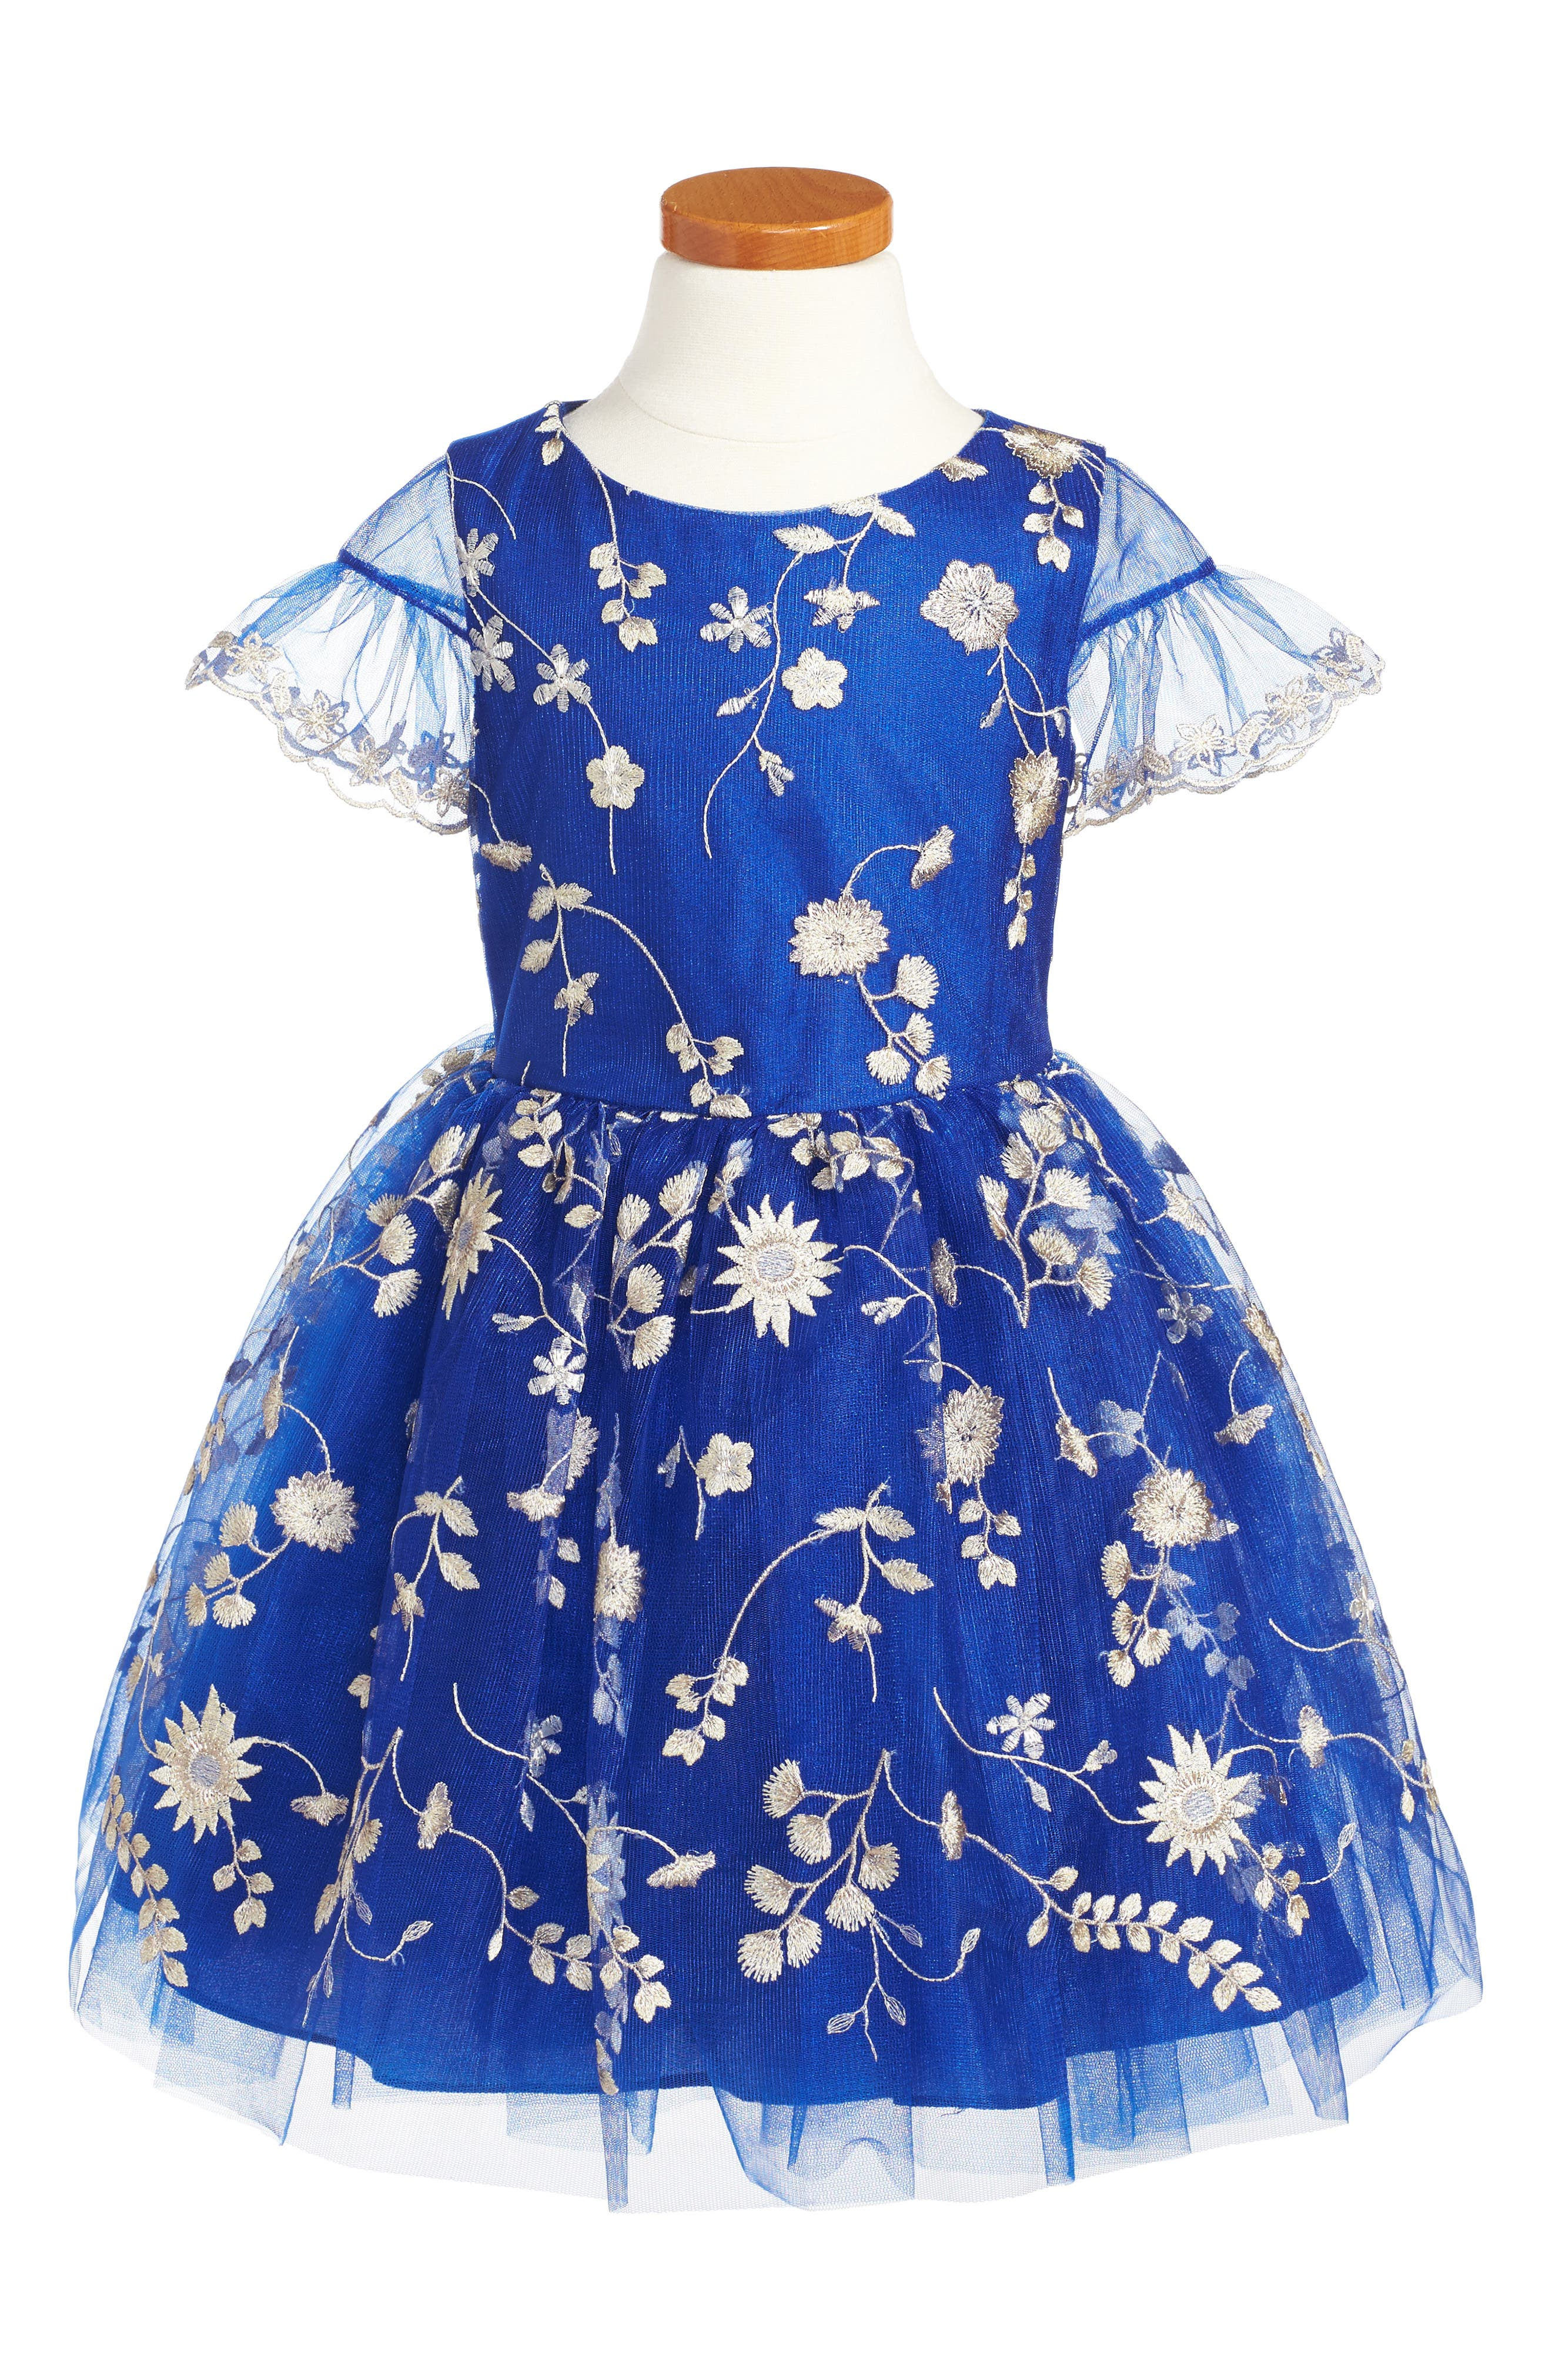 Main Image - David Charles Floral Embroidery Dress (Toddler Girls & Little Girls)